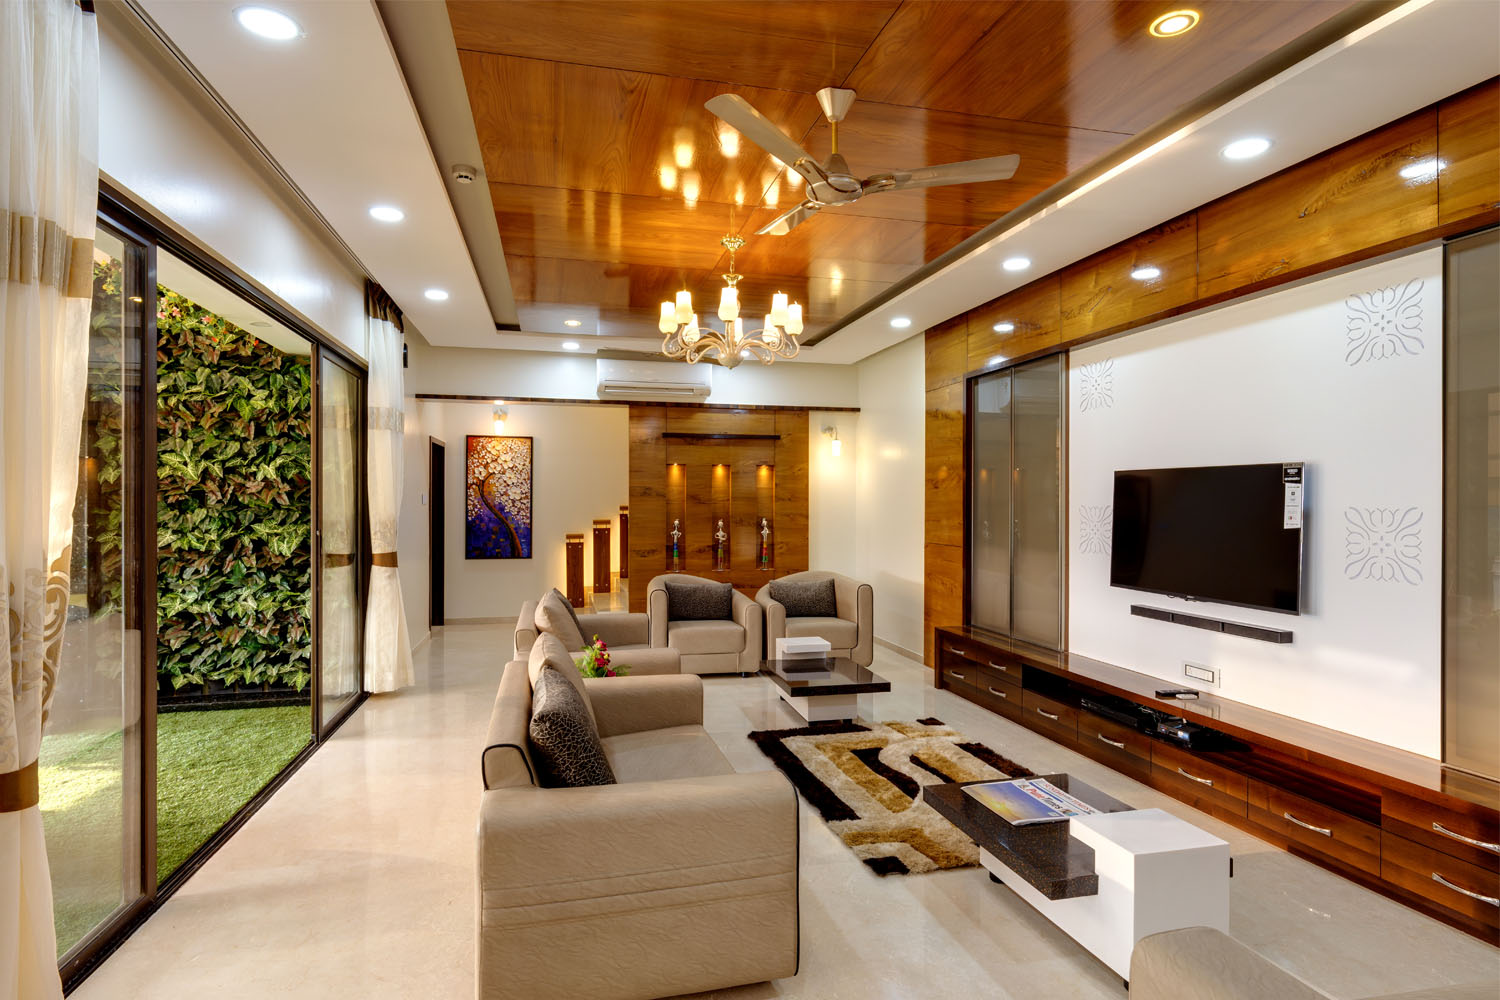 Best interior designer pune nerlekar interior designing for Indoor design